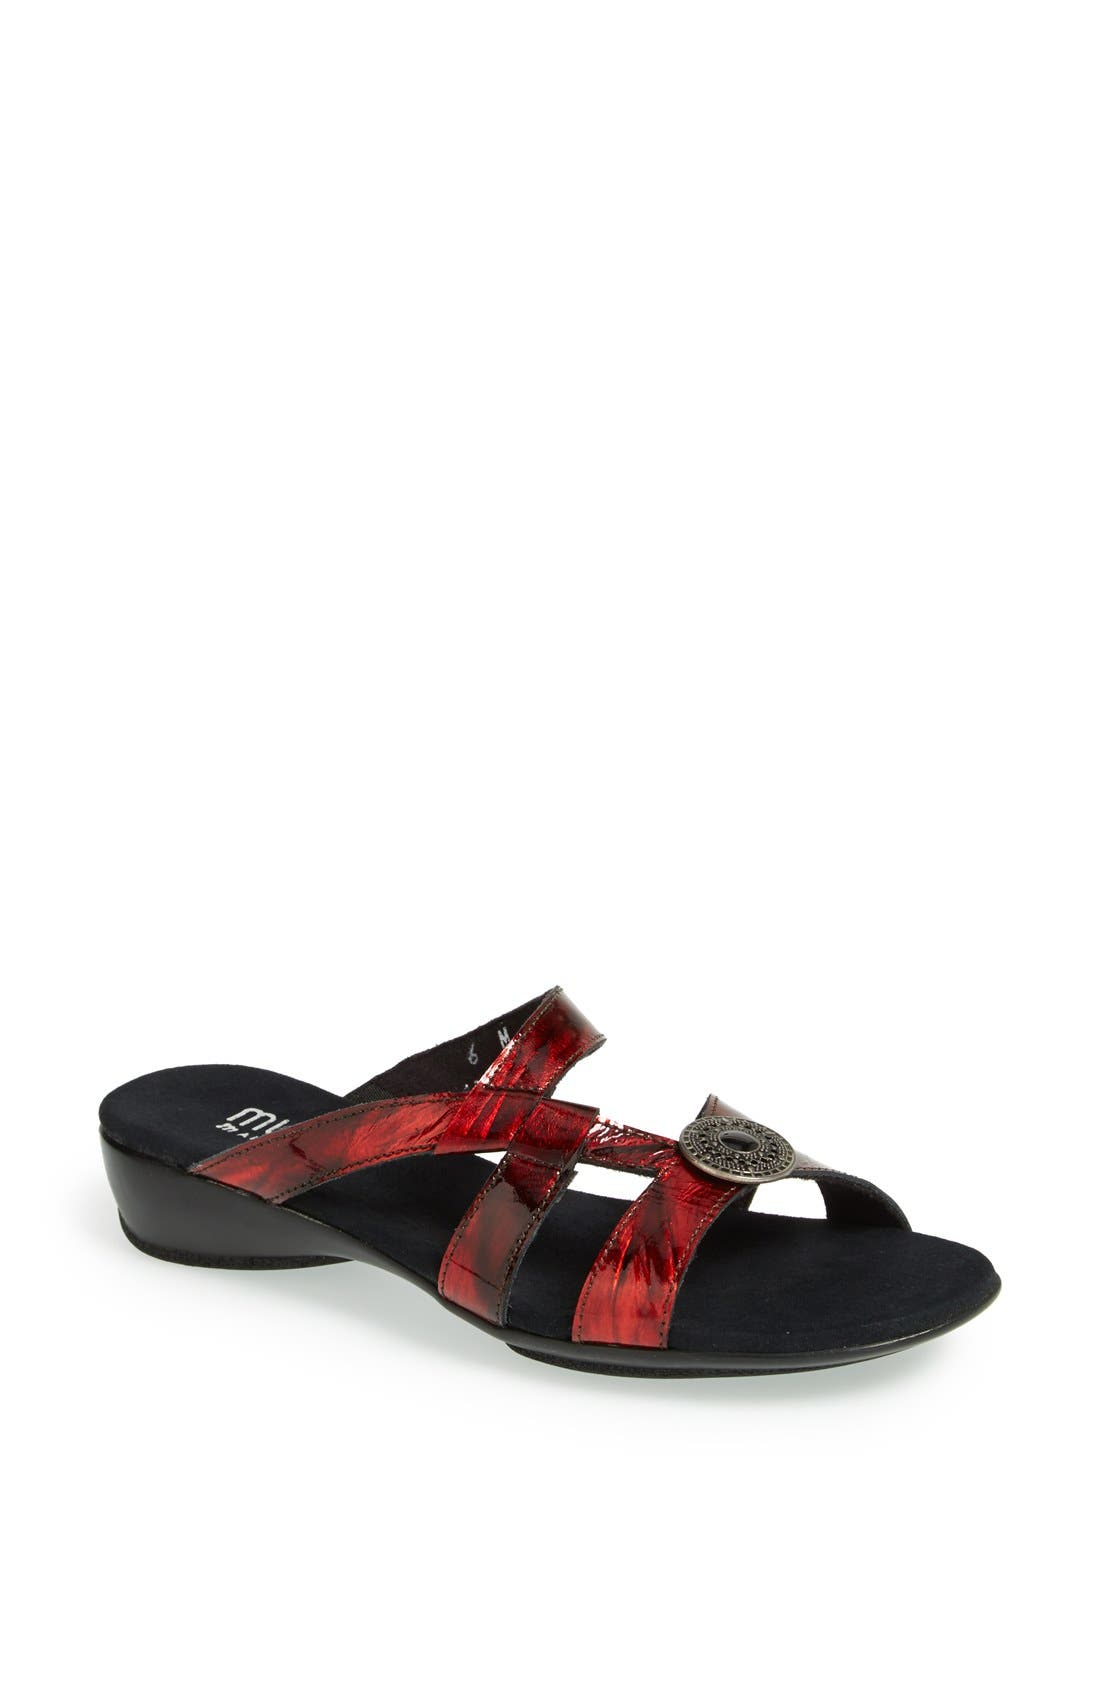 Main Image - Munro 'Chloe' Leather Slide